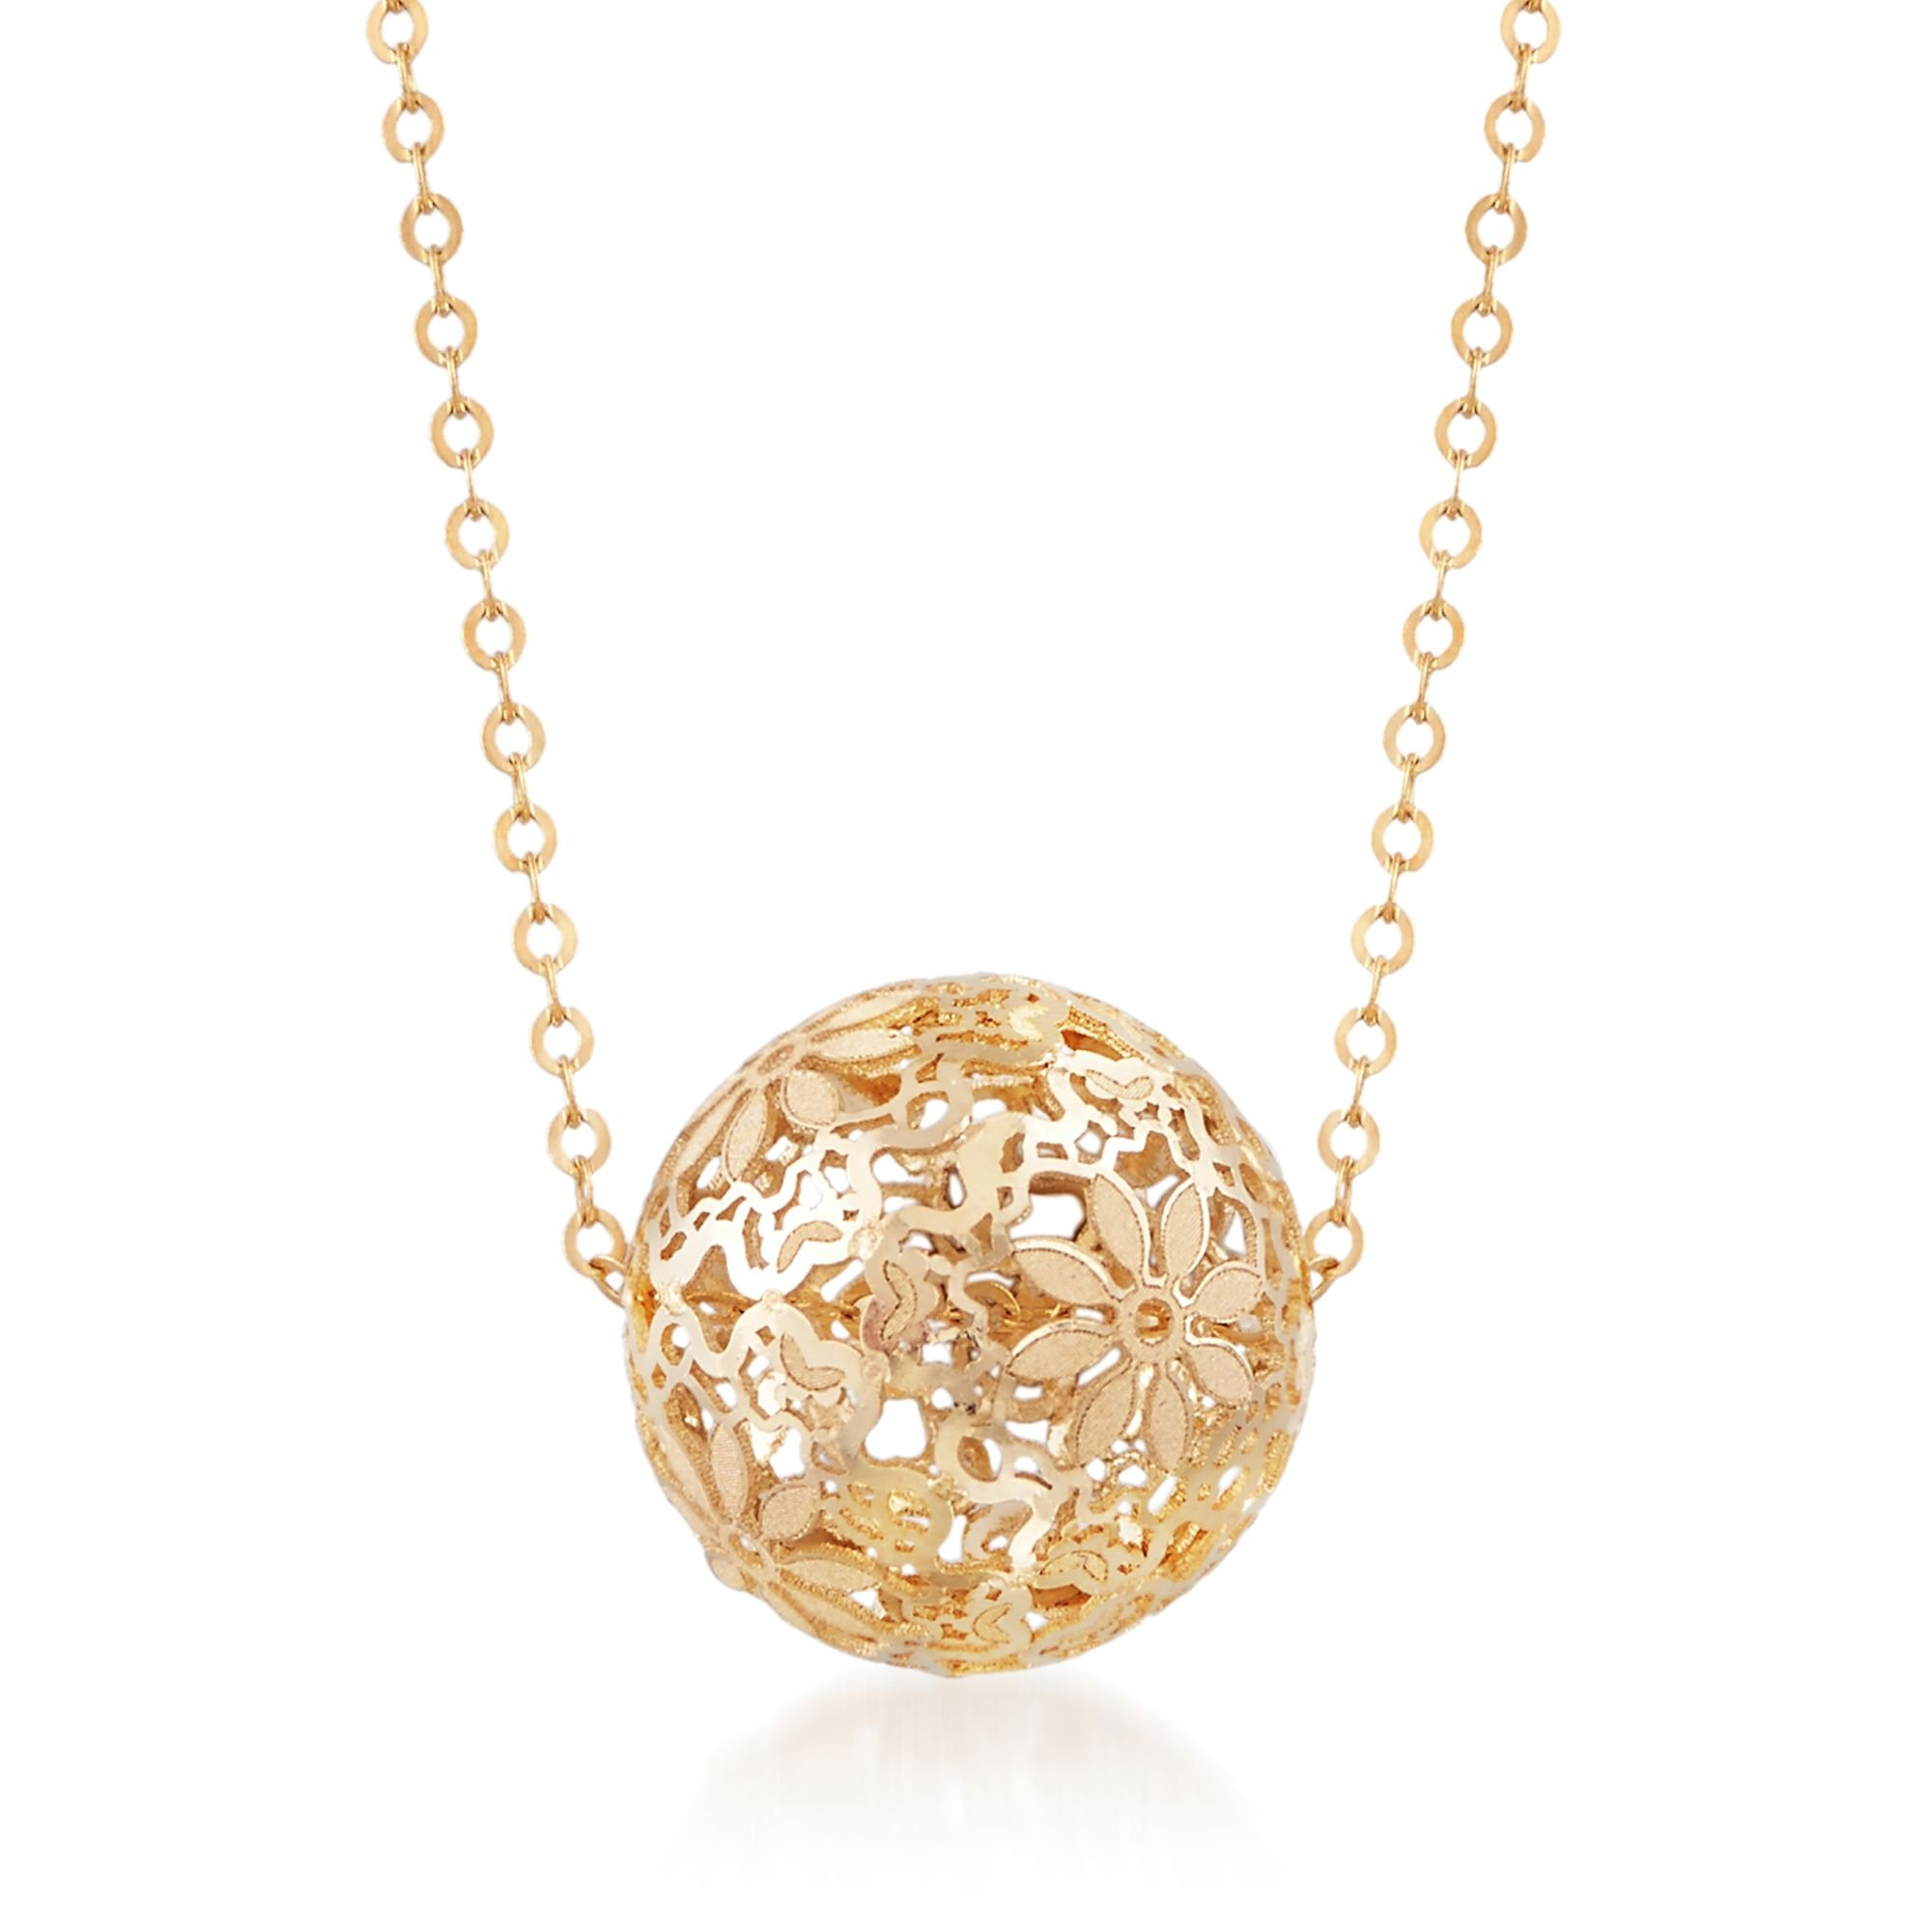 Ross-Simons Italian 14kt Yellow Gold Floral Openwork Bead Necklace